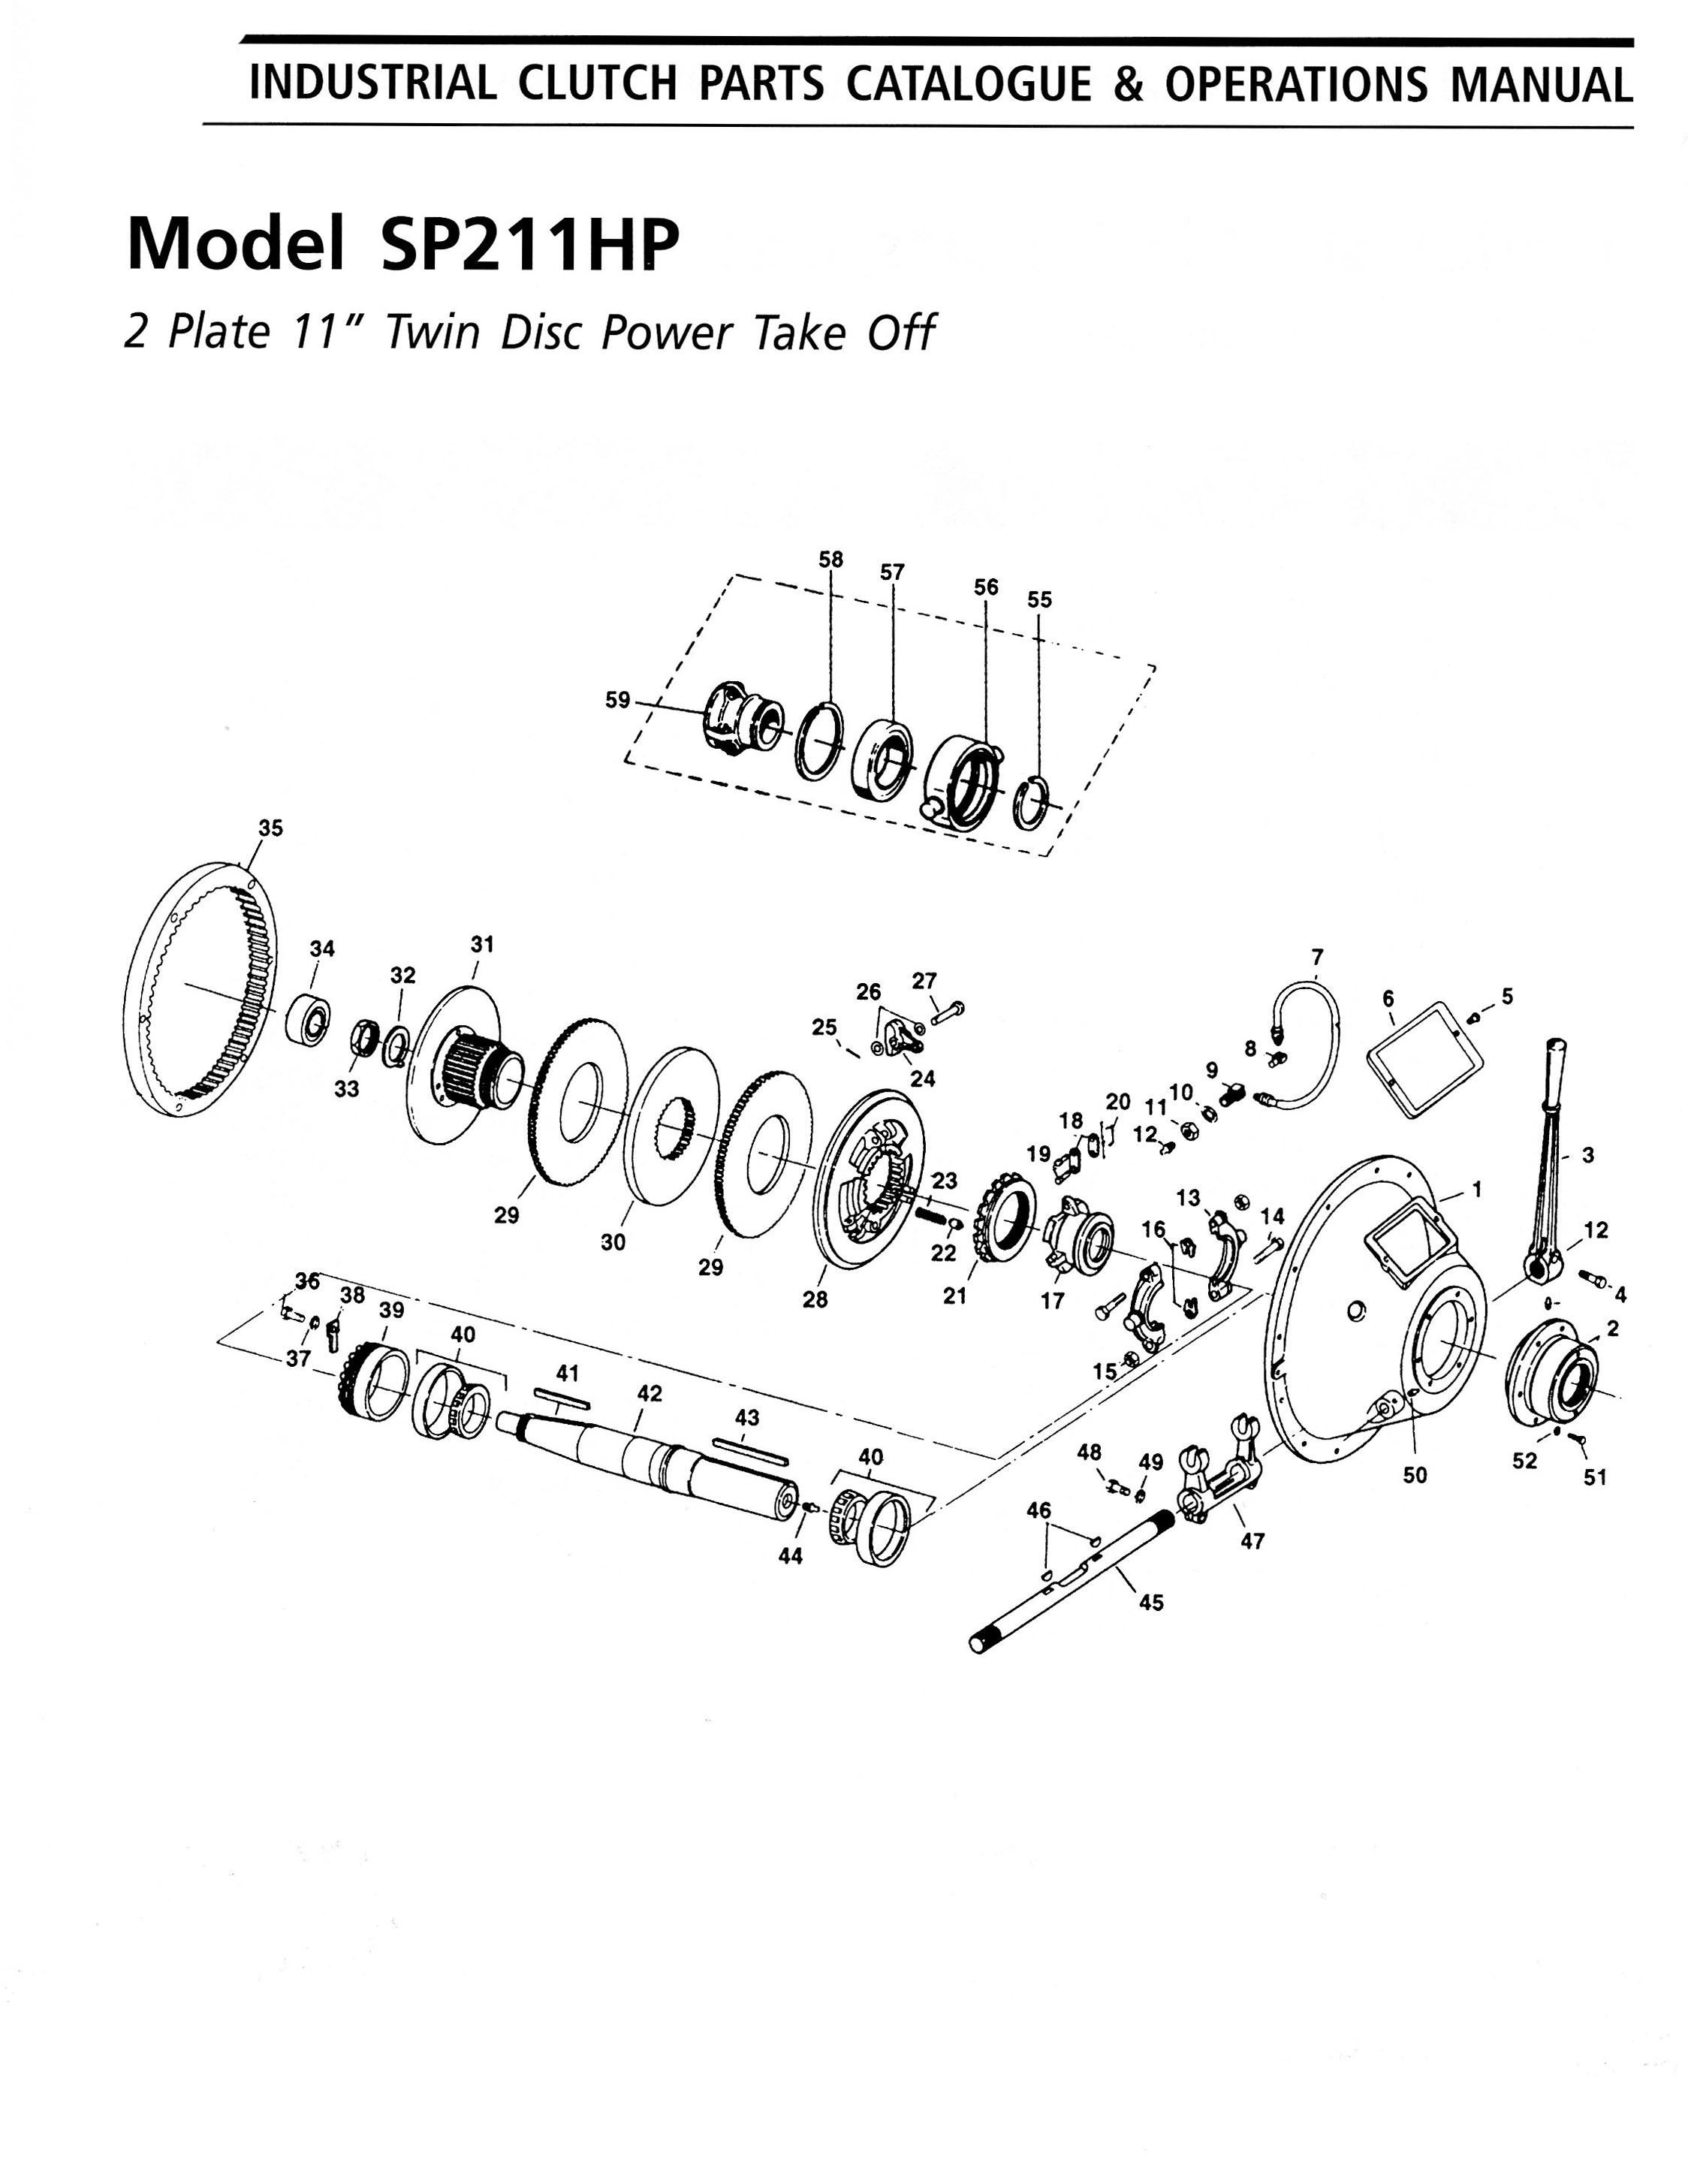 Ottawa Clutch Automotive Industrial Agricultural Clutches 1968 Ford Galaxie Engine Diagram 24 Sp211hp Parts List